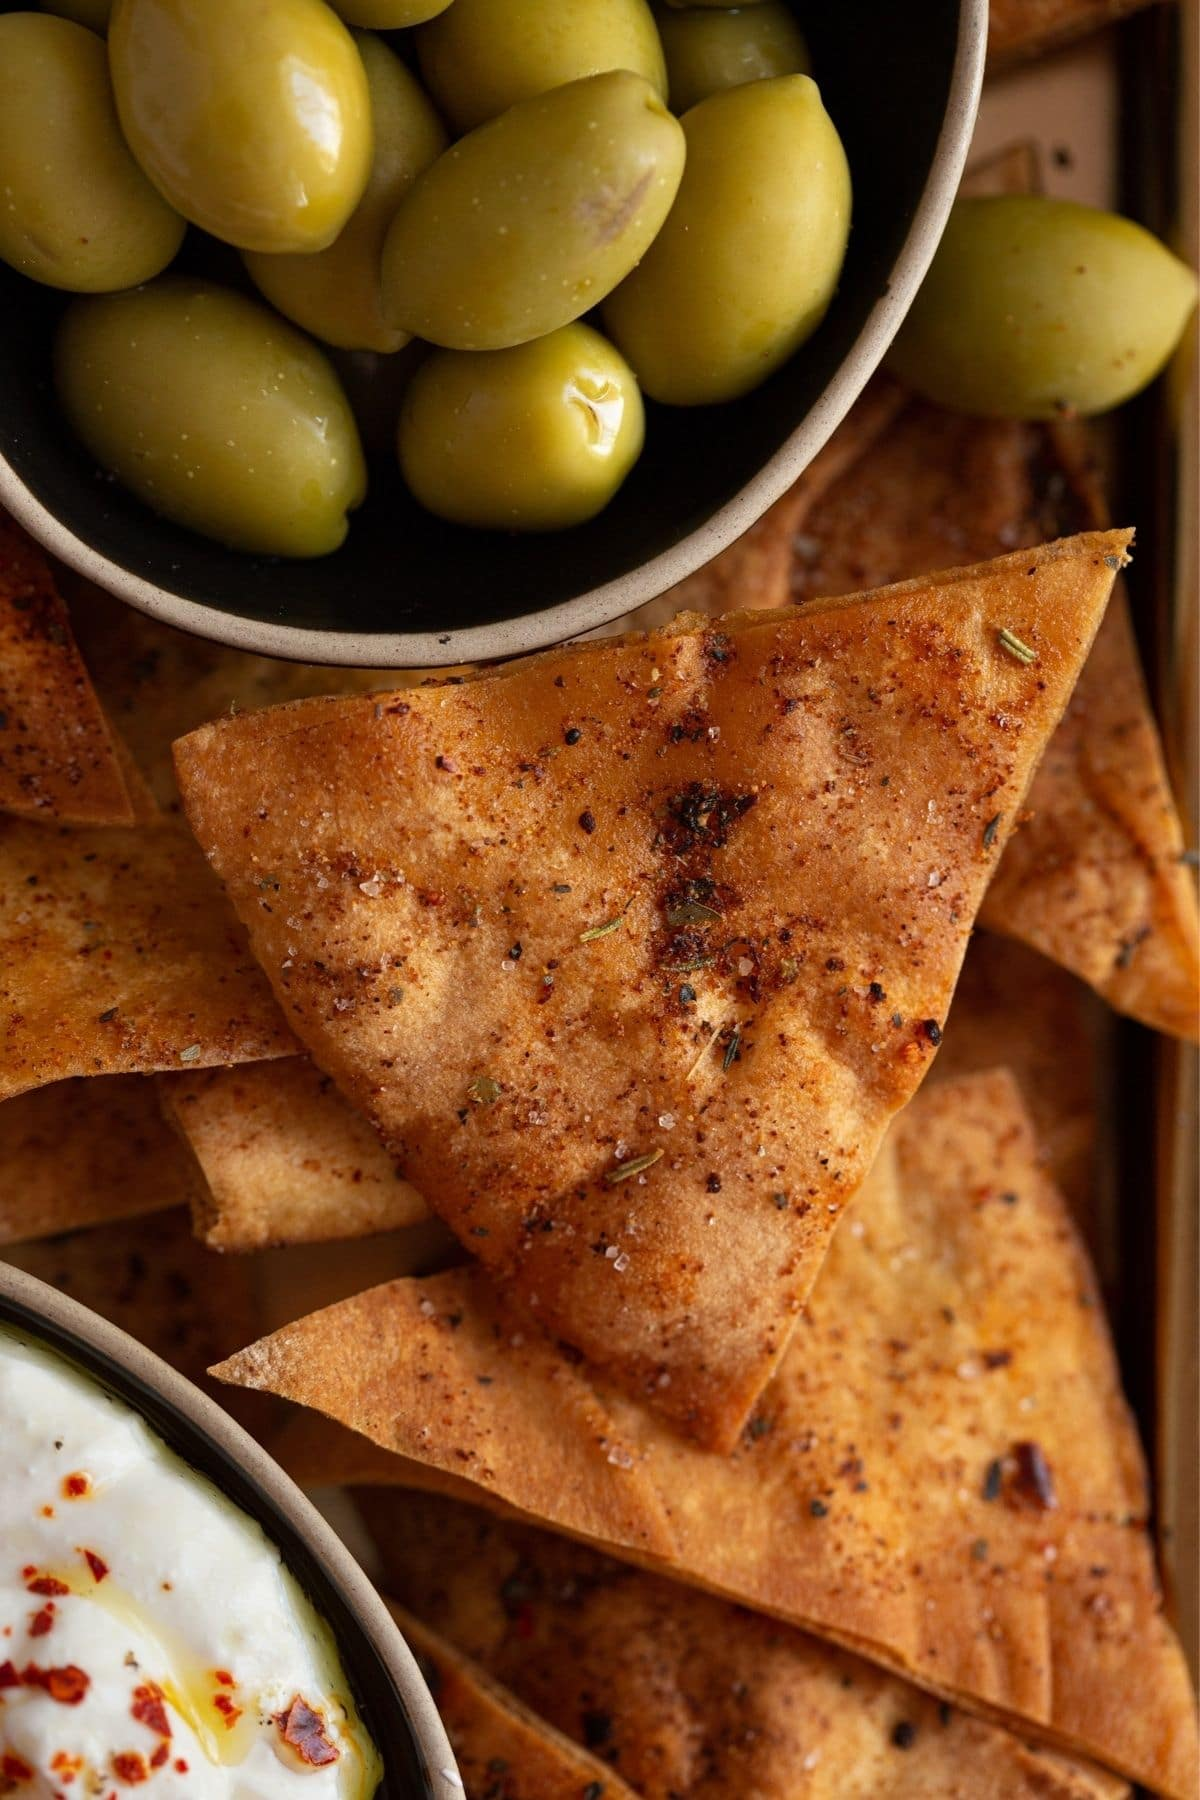 Seasoned pita chips on tray by bowl of green olives